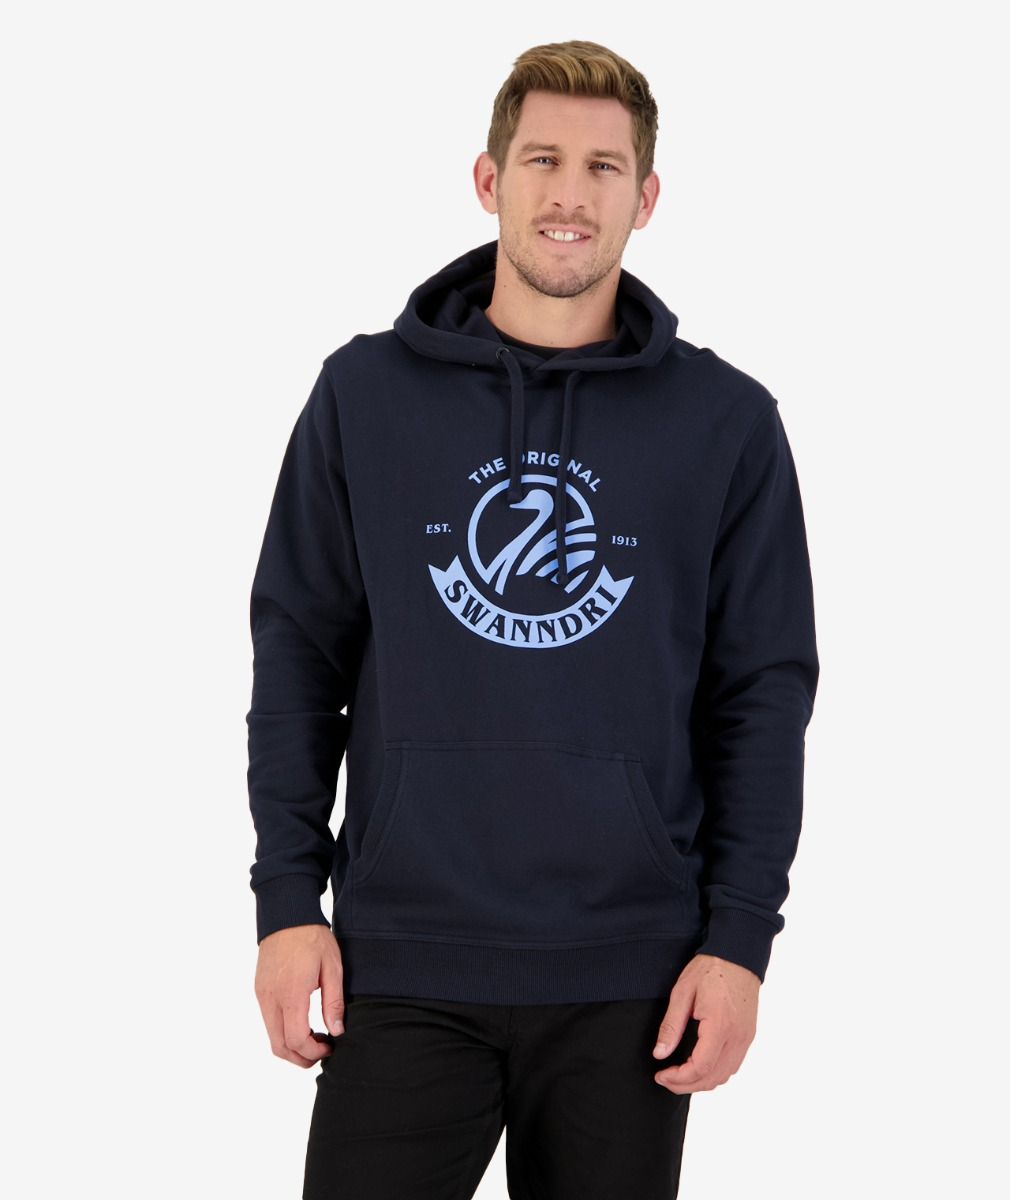 Original Fleece Hoody in Navy/Blue